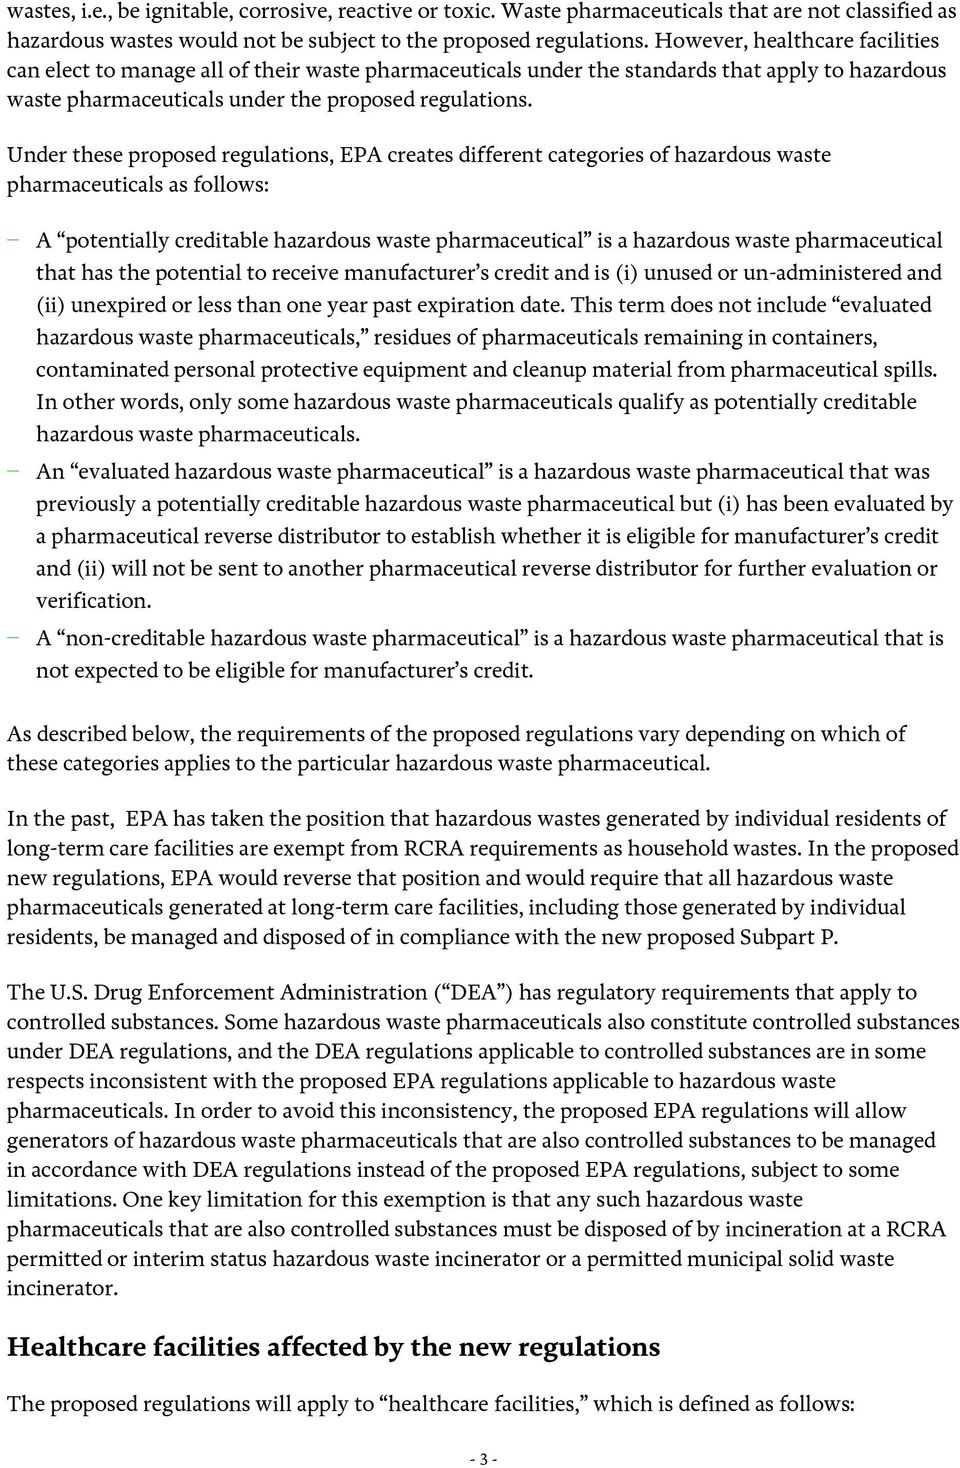 Under these proposed regulations, EPA creates different categories of hazardous waste pharmaceuticals as follows: A potentially creditable hazardous waste pharmaceutical is a hazardous waste